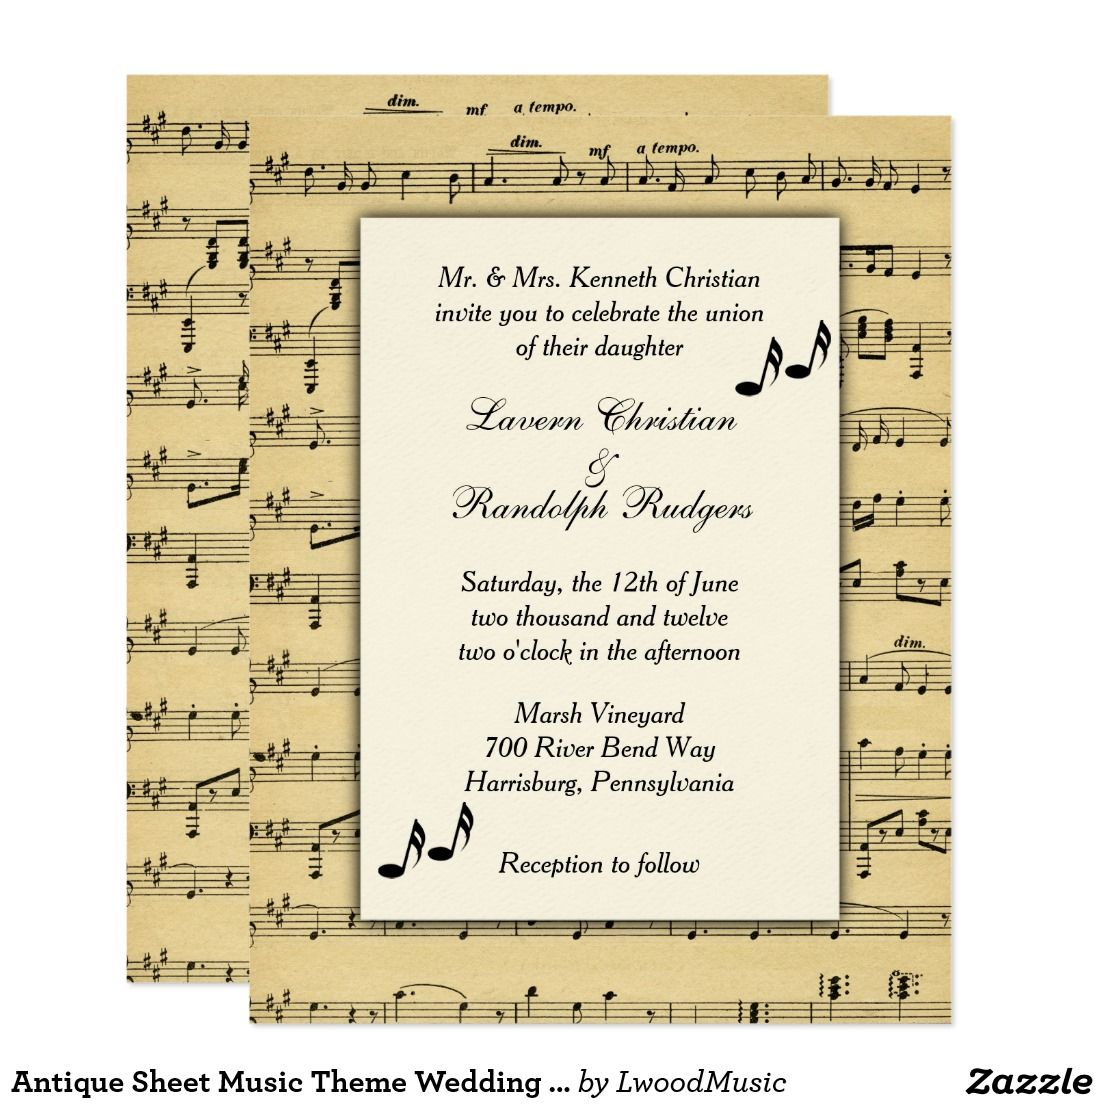 Antique Sheet Music Theme Wedding Invitation | Pinterest | Music ...